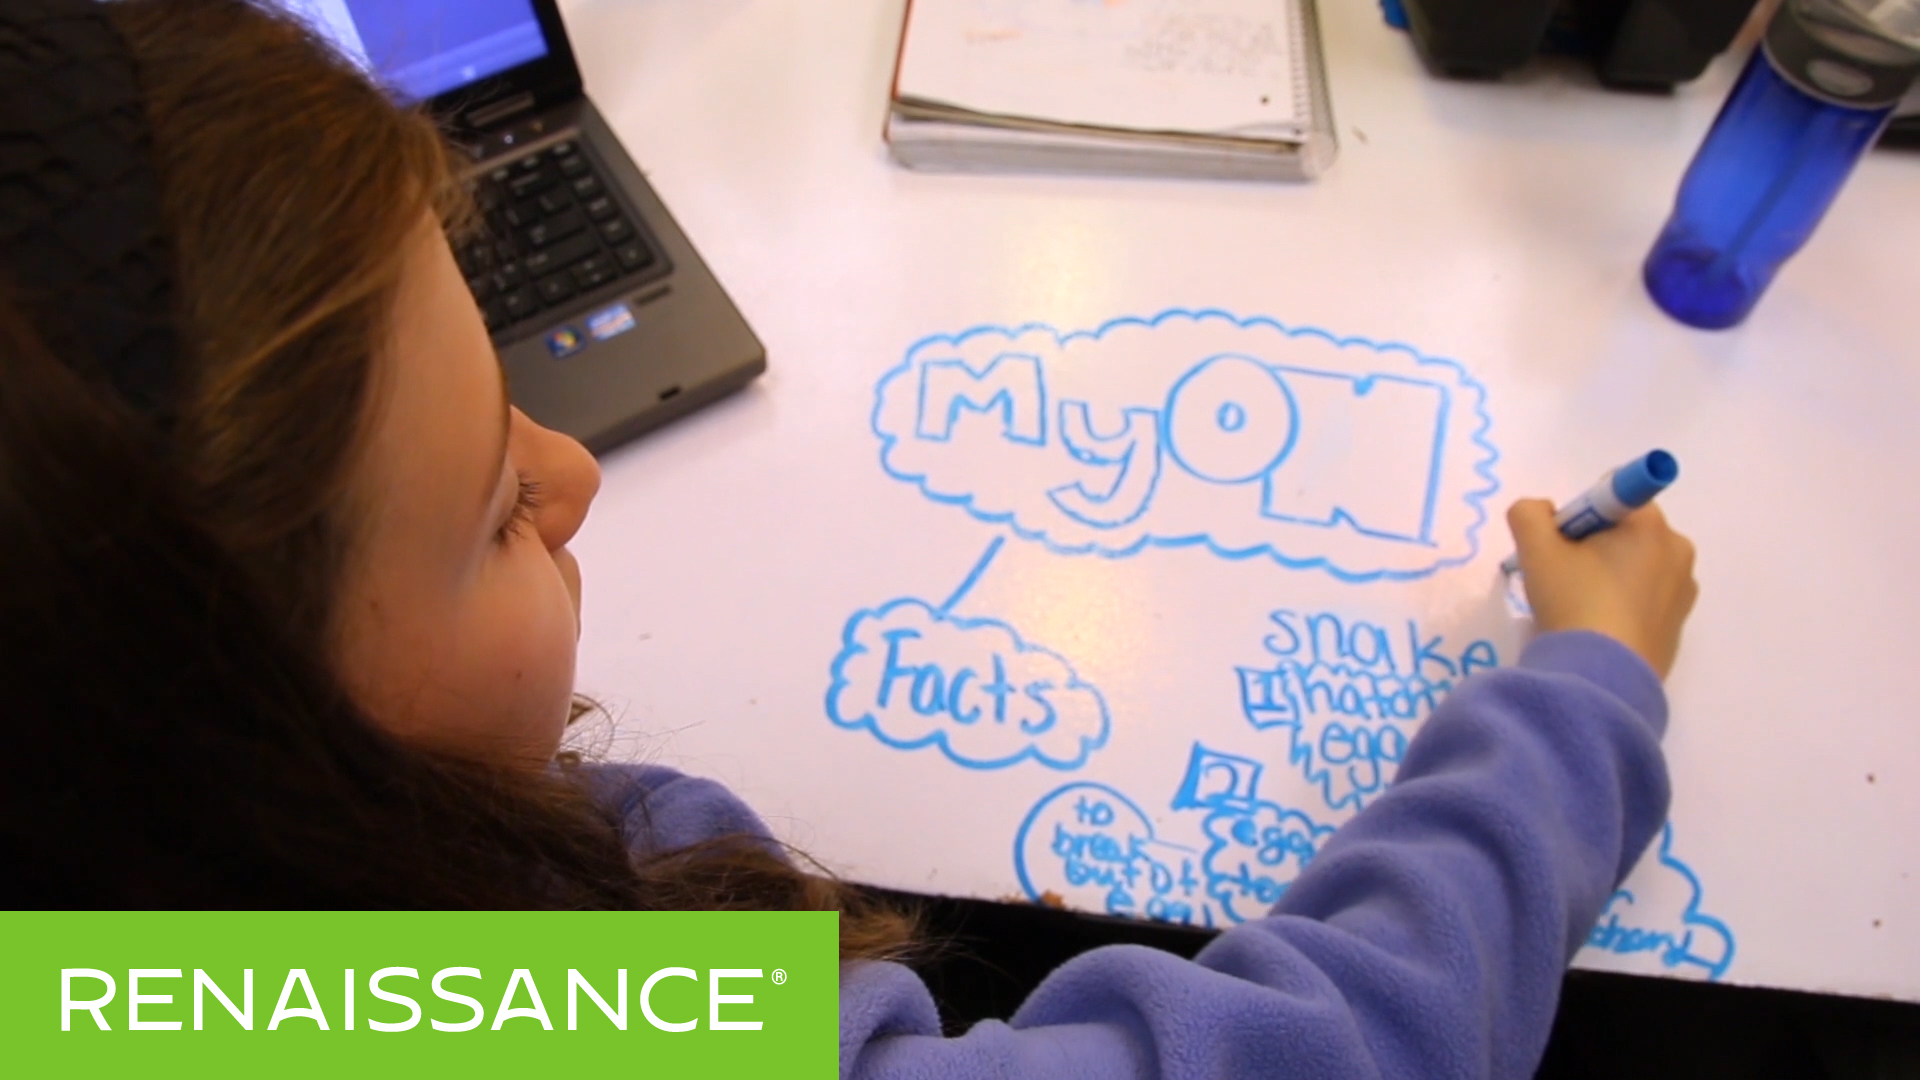 myON® by Renaissance® - All About myON!